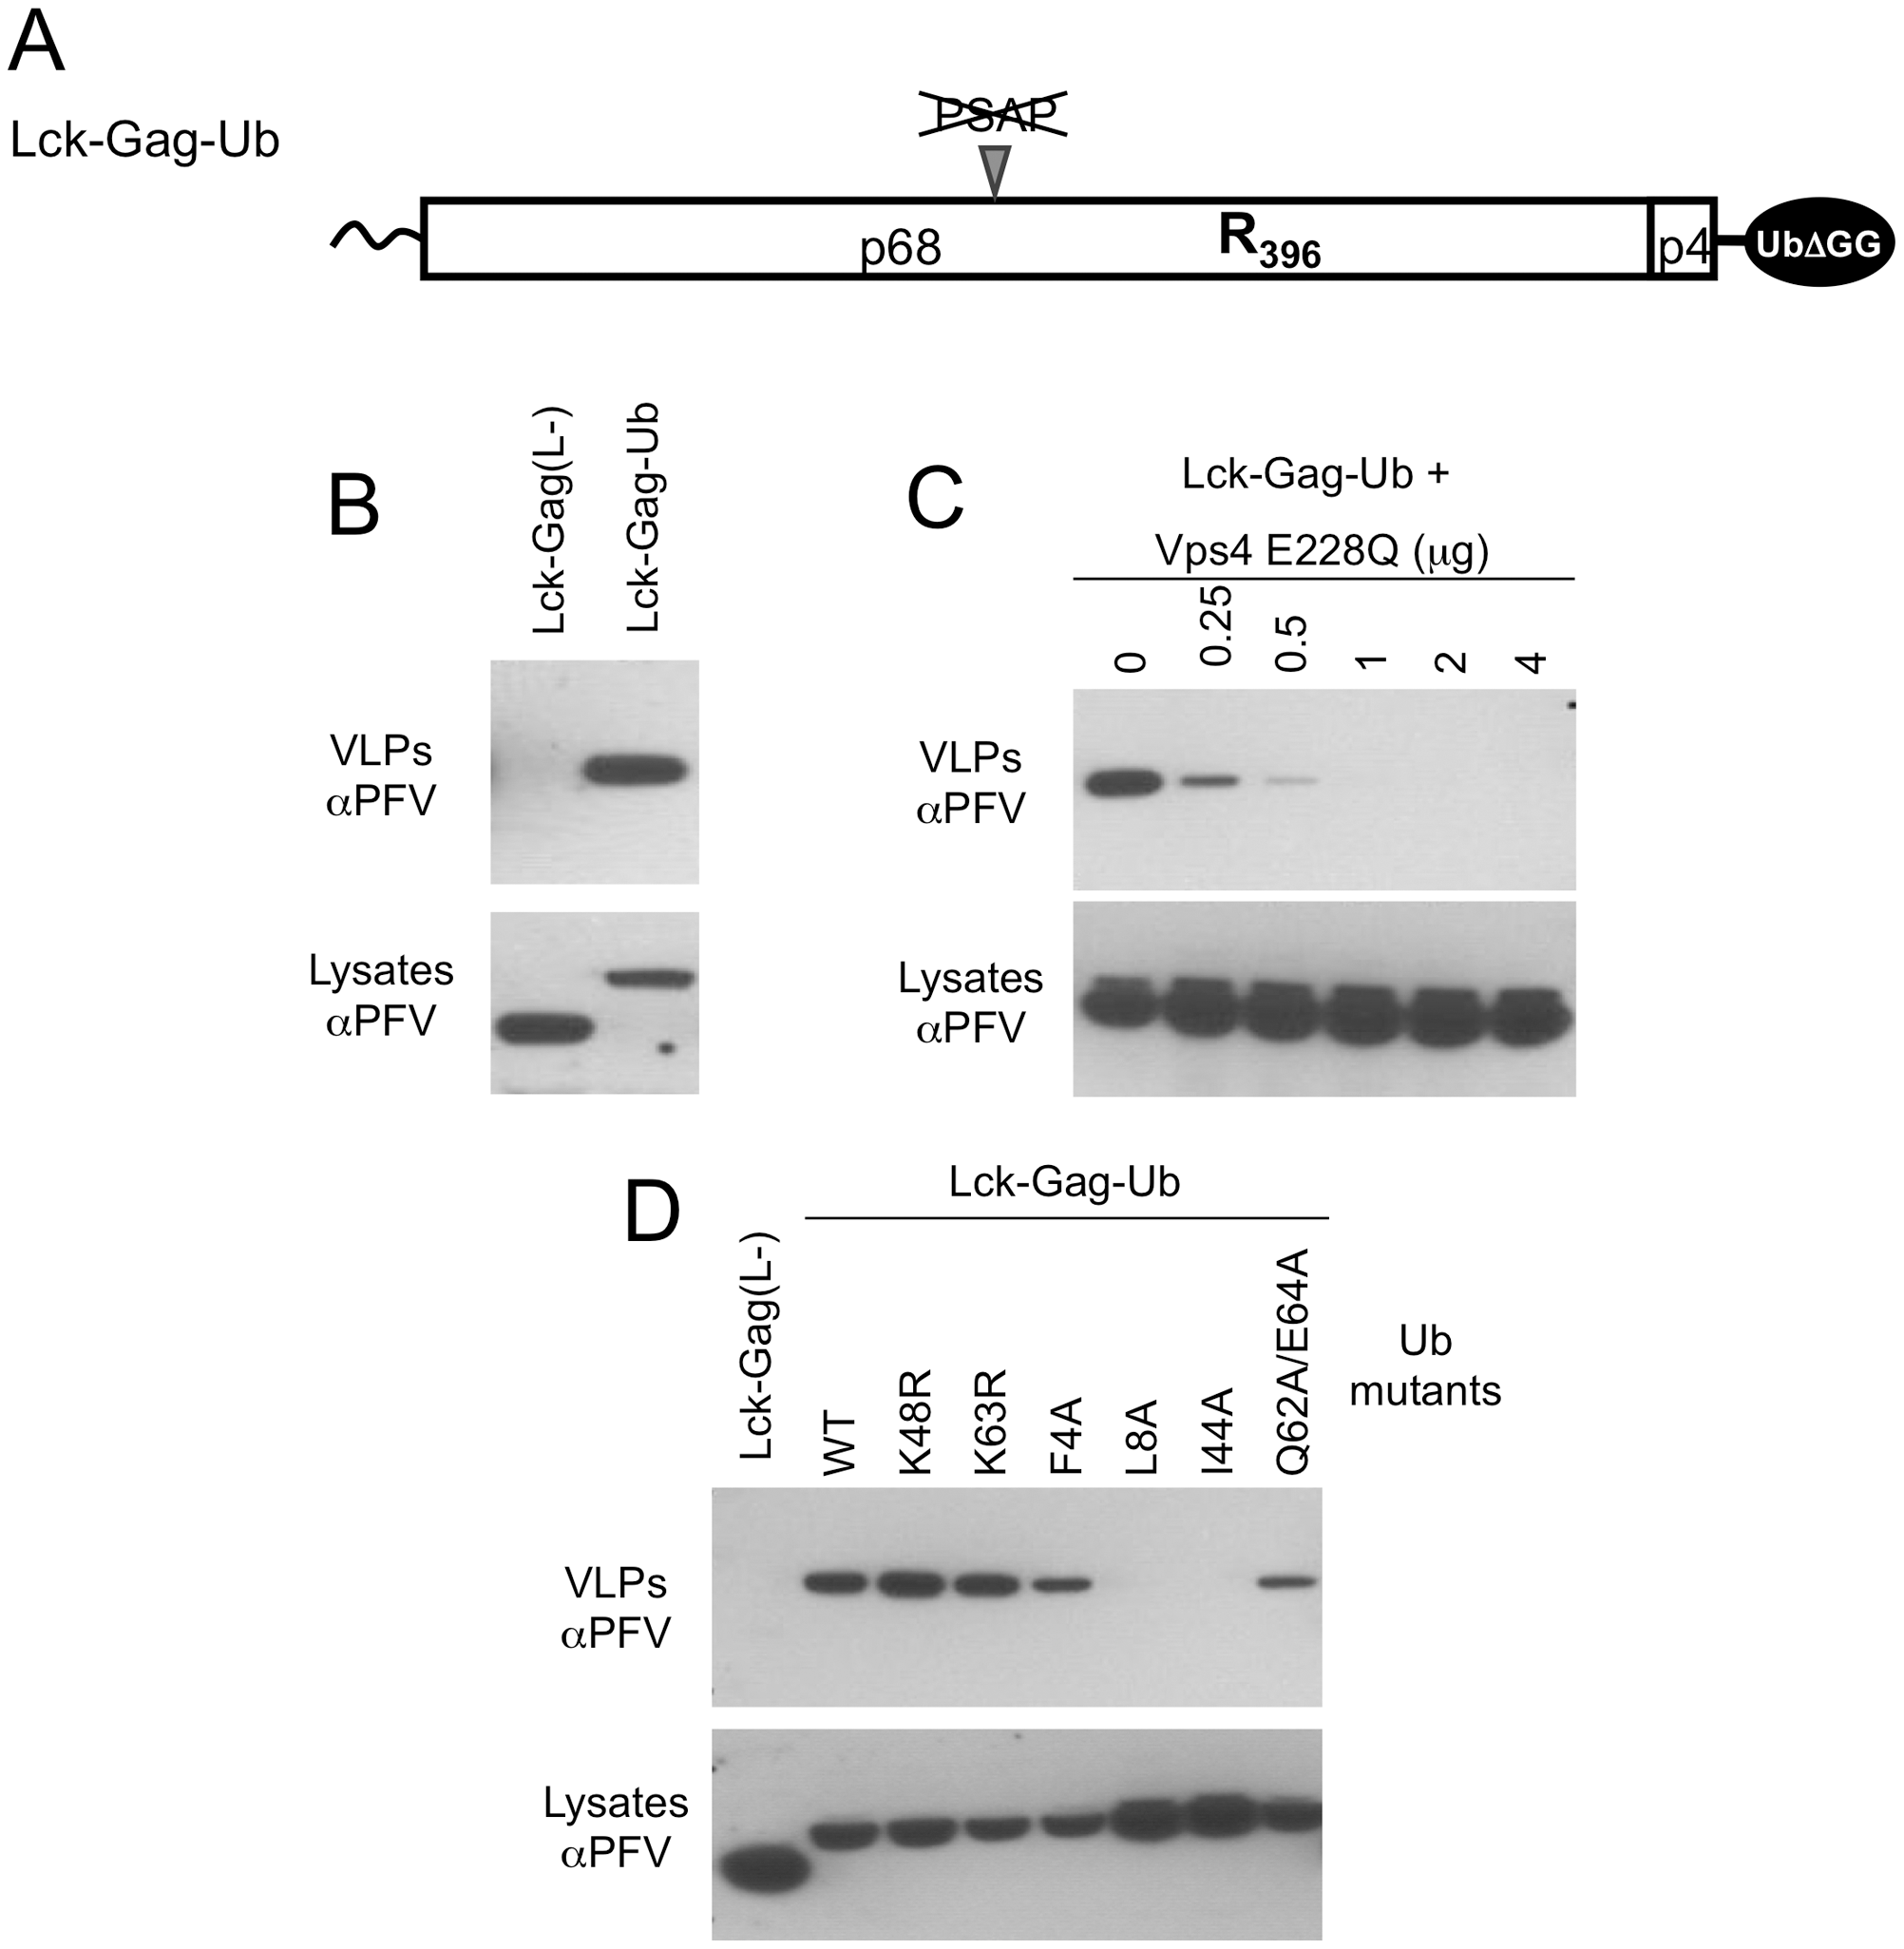 Direct fusion of ubiquitin to Lck-Gag stimulates L-domain-dependent and -independent budding.